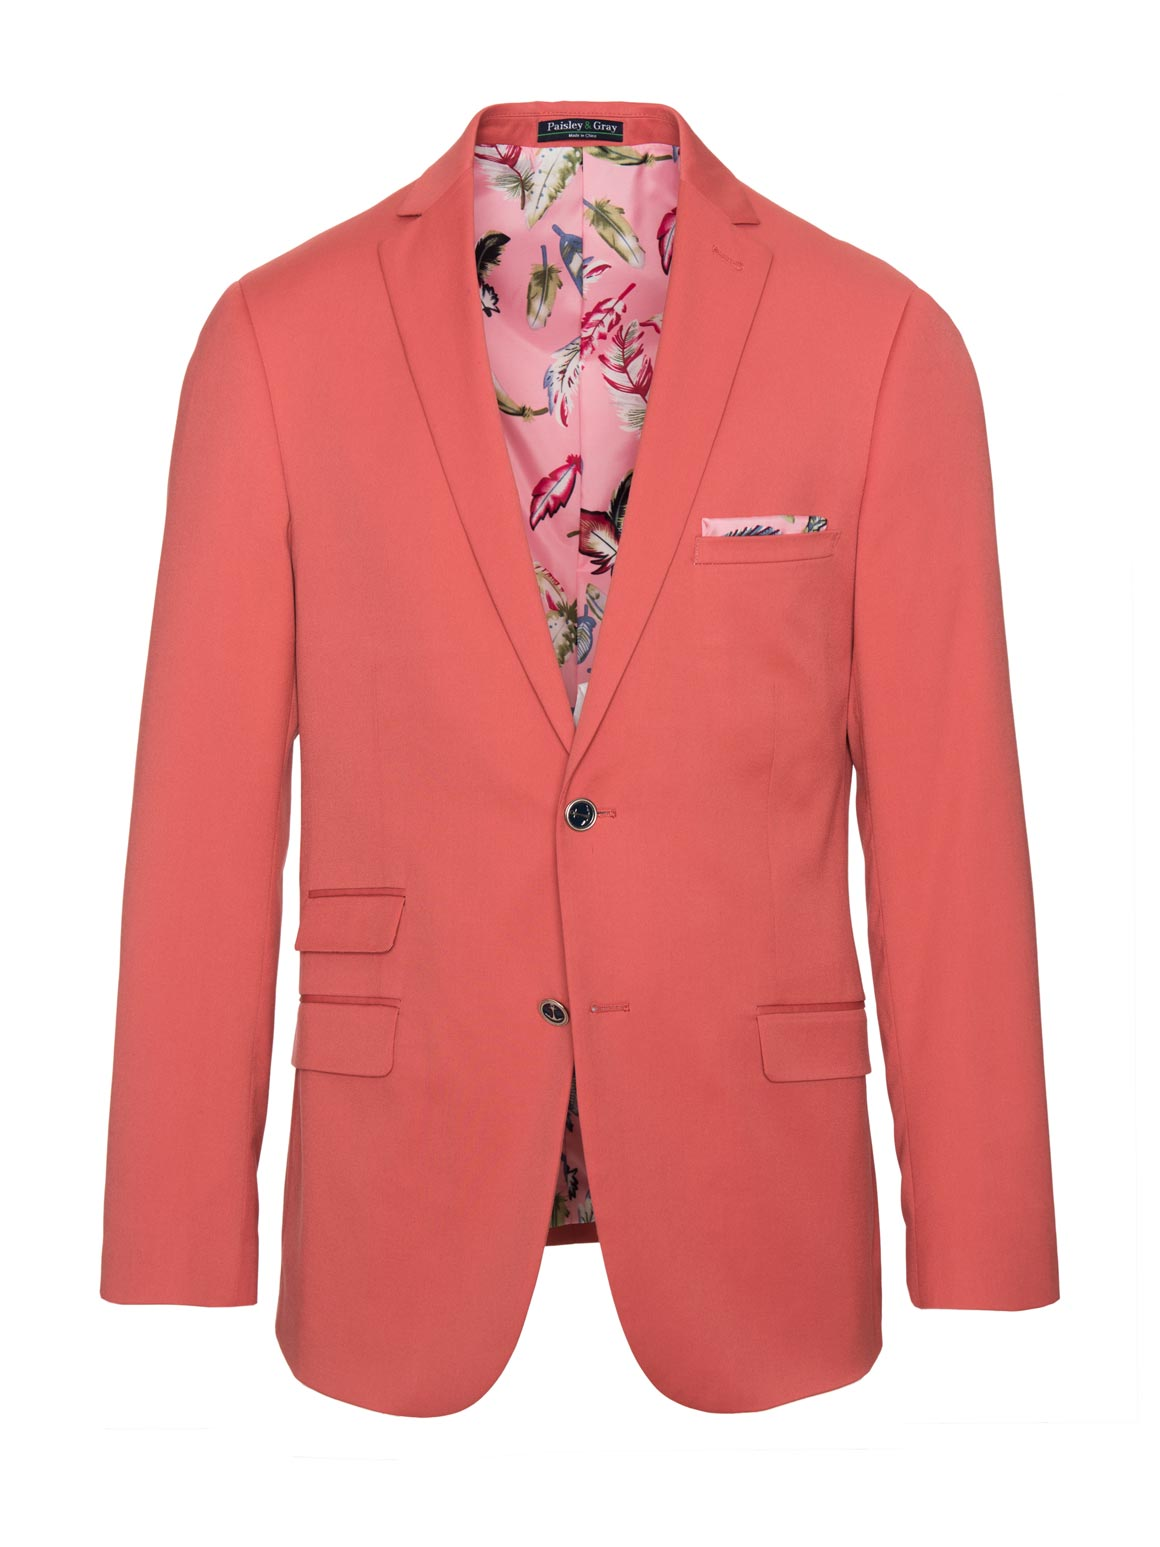 paisley & gray pink solid slim fit notch lapel suit jacket 2117J lively, pink feather lining and pocket square pink neat elbow patches navy plated buttons flap pockets